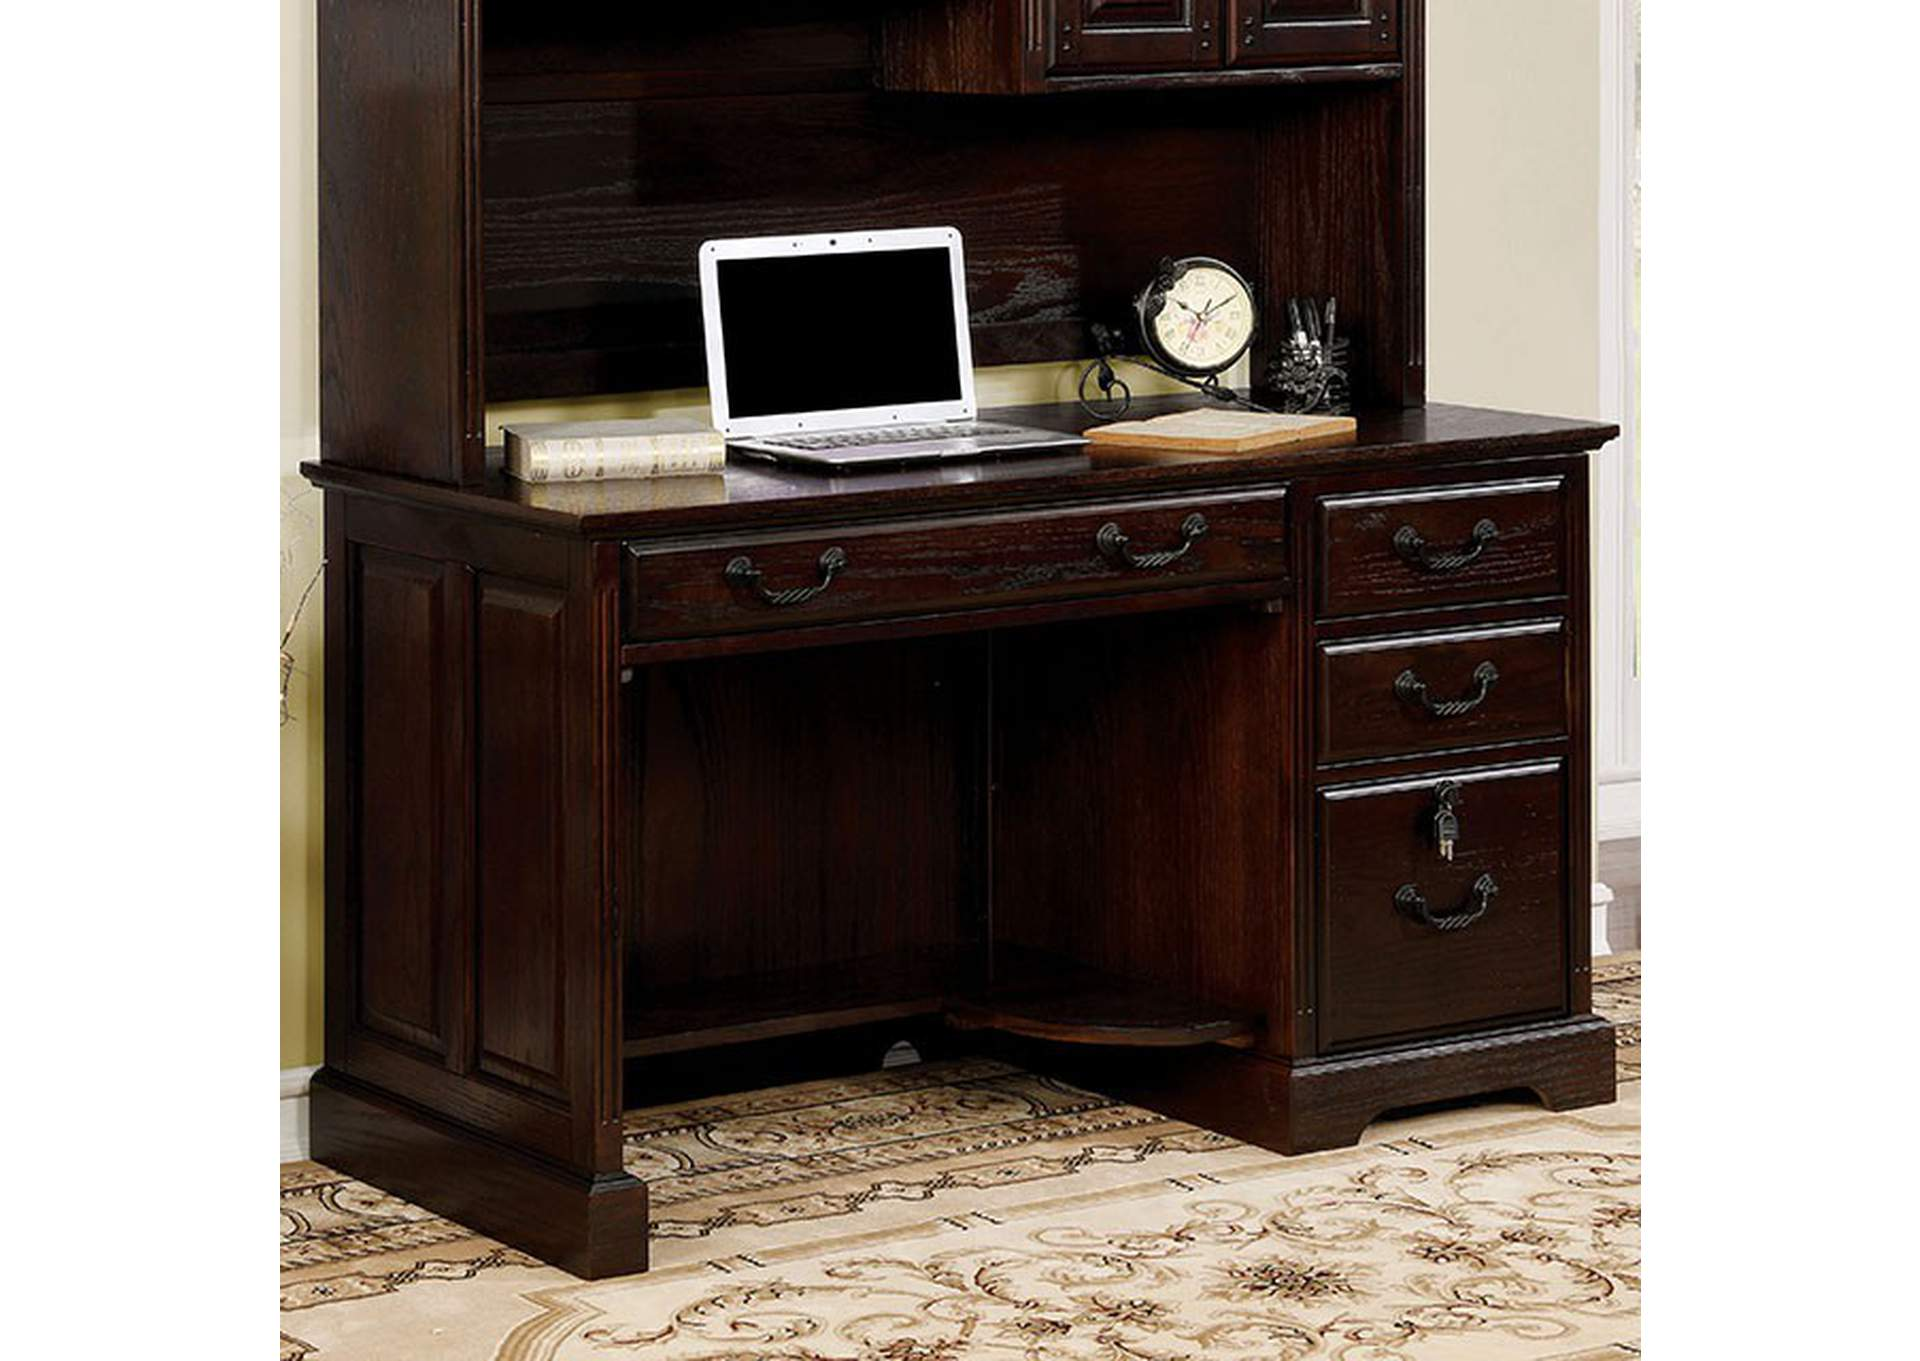 Tami Dark Walnut Credenza Desk,Furniture of America